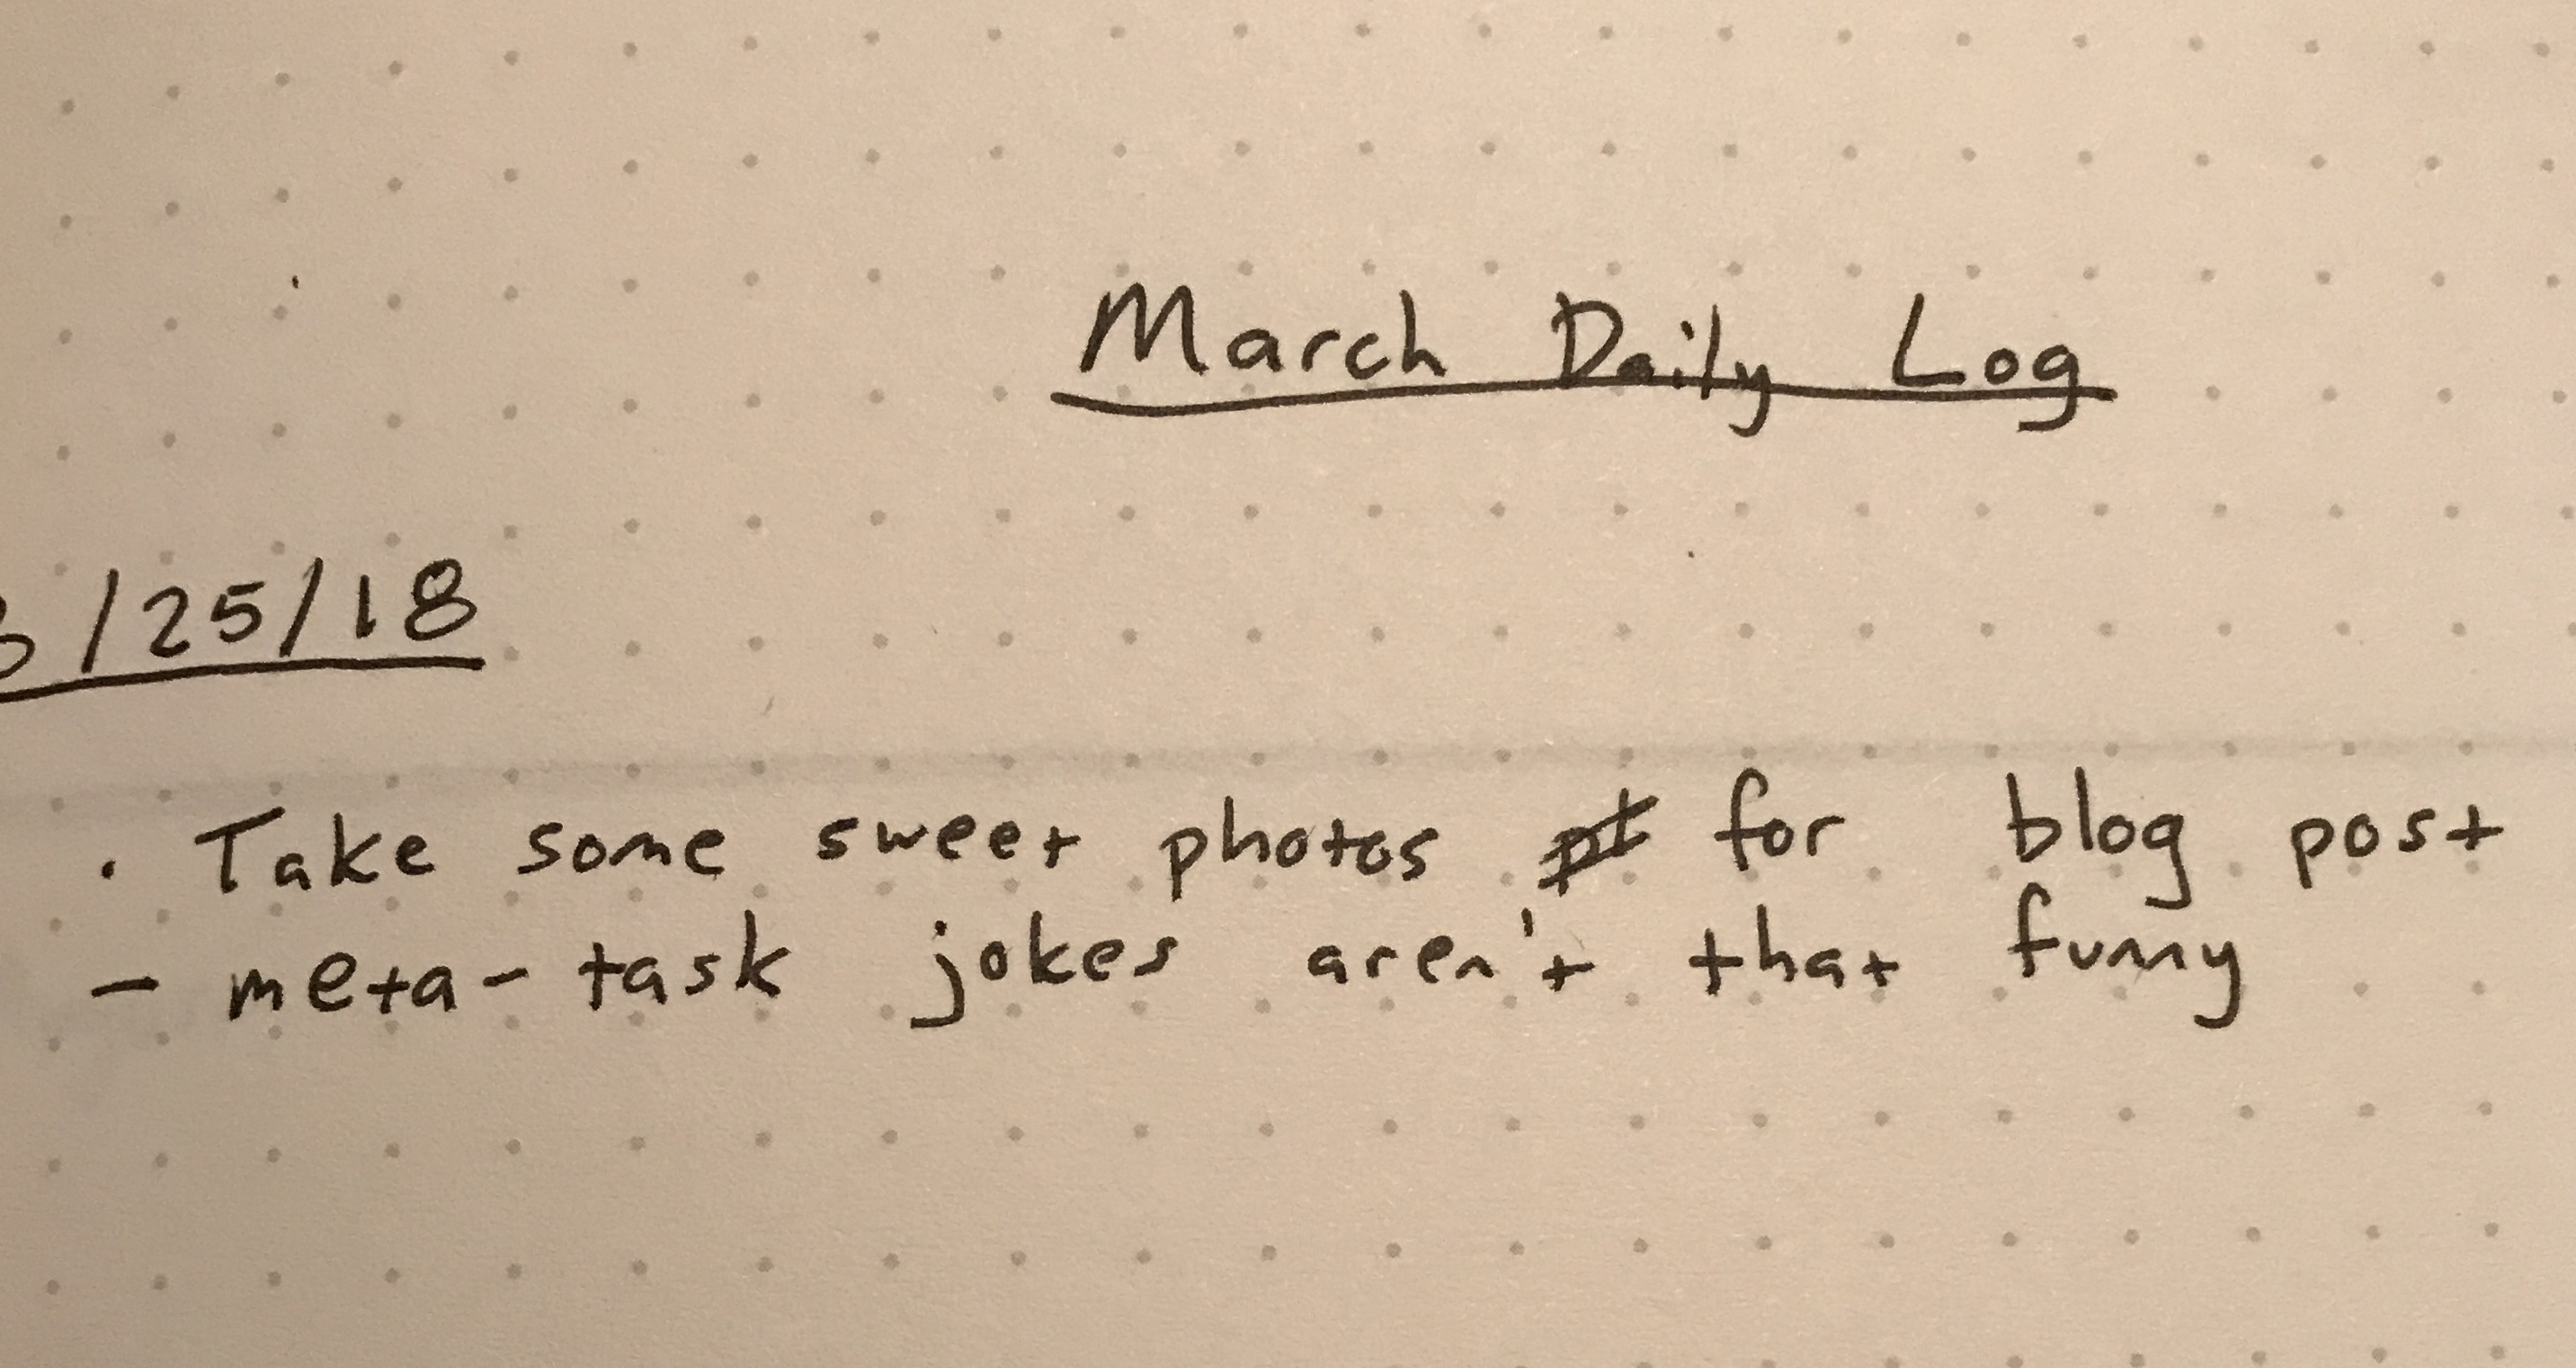 Filled-in Daily Log